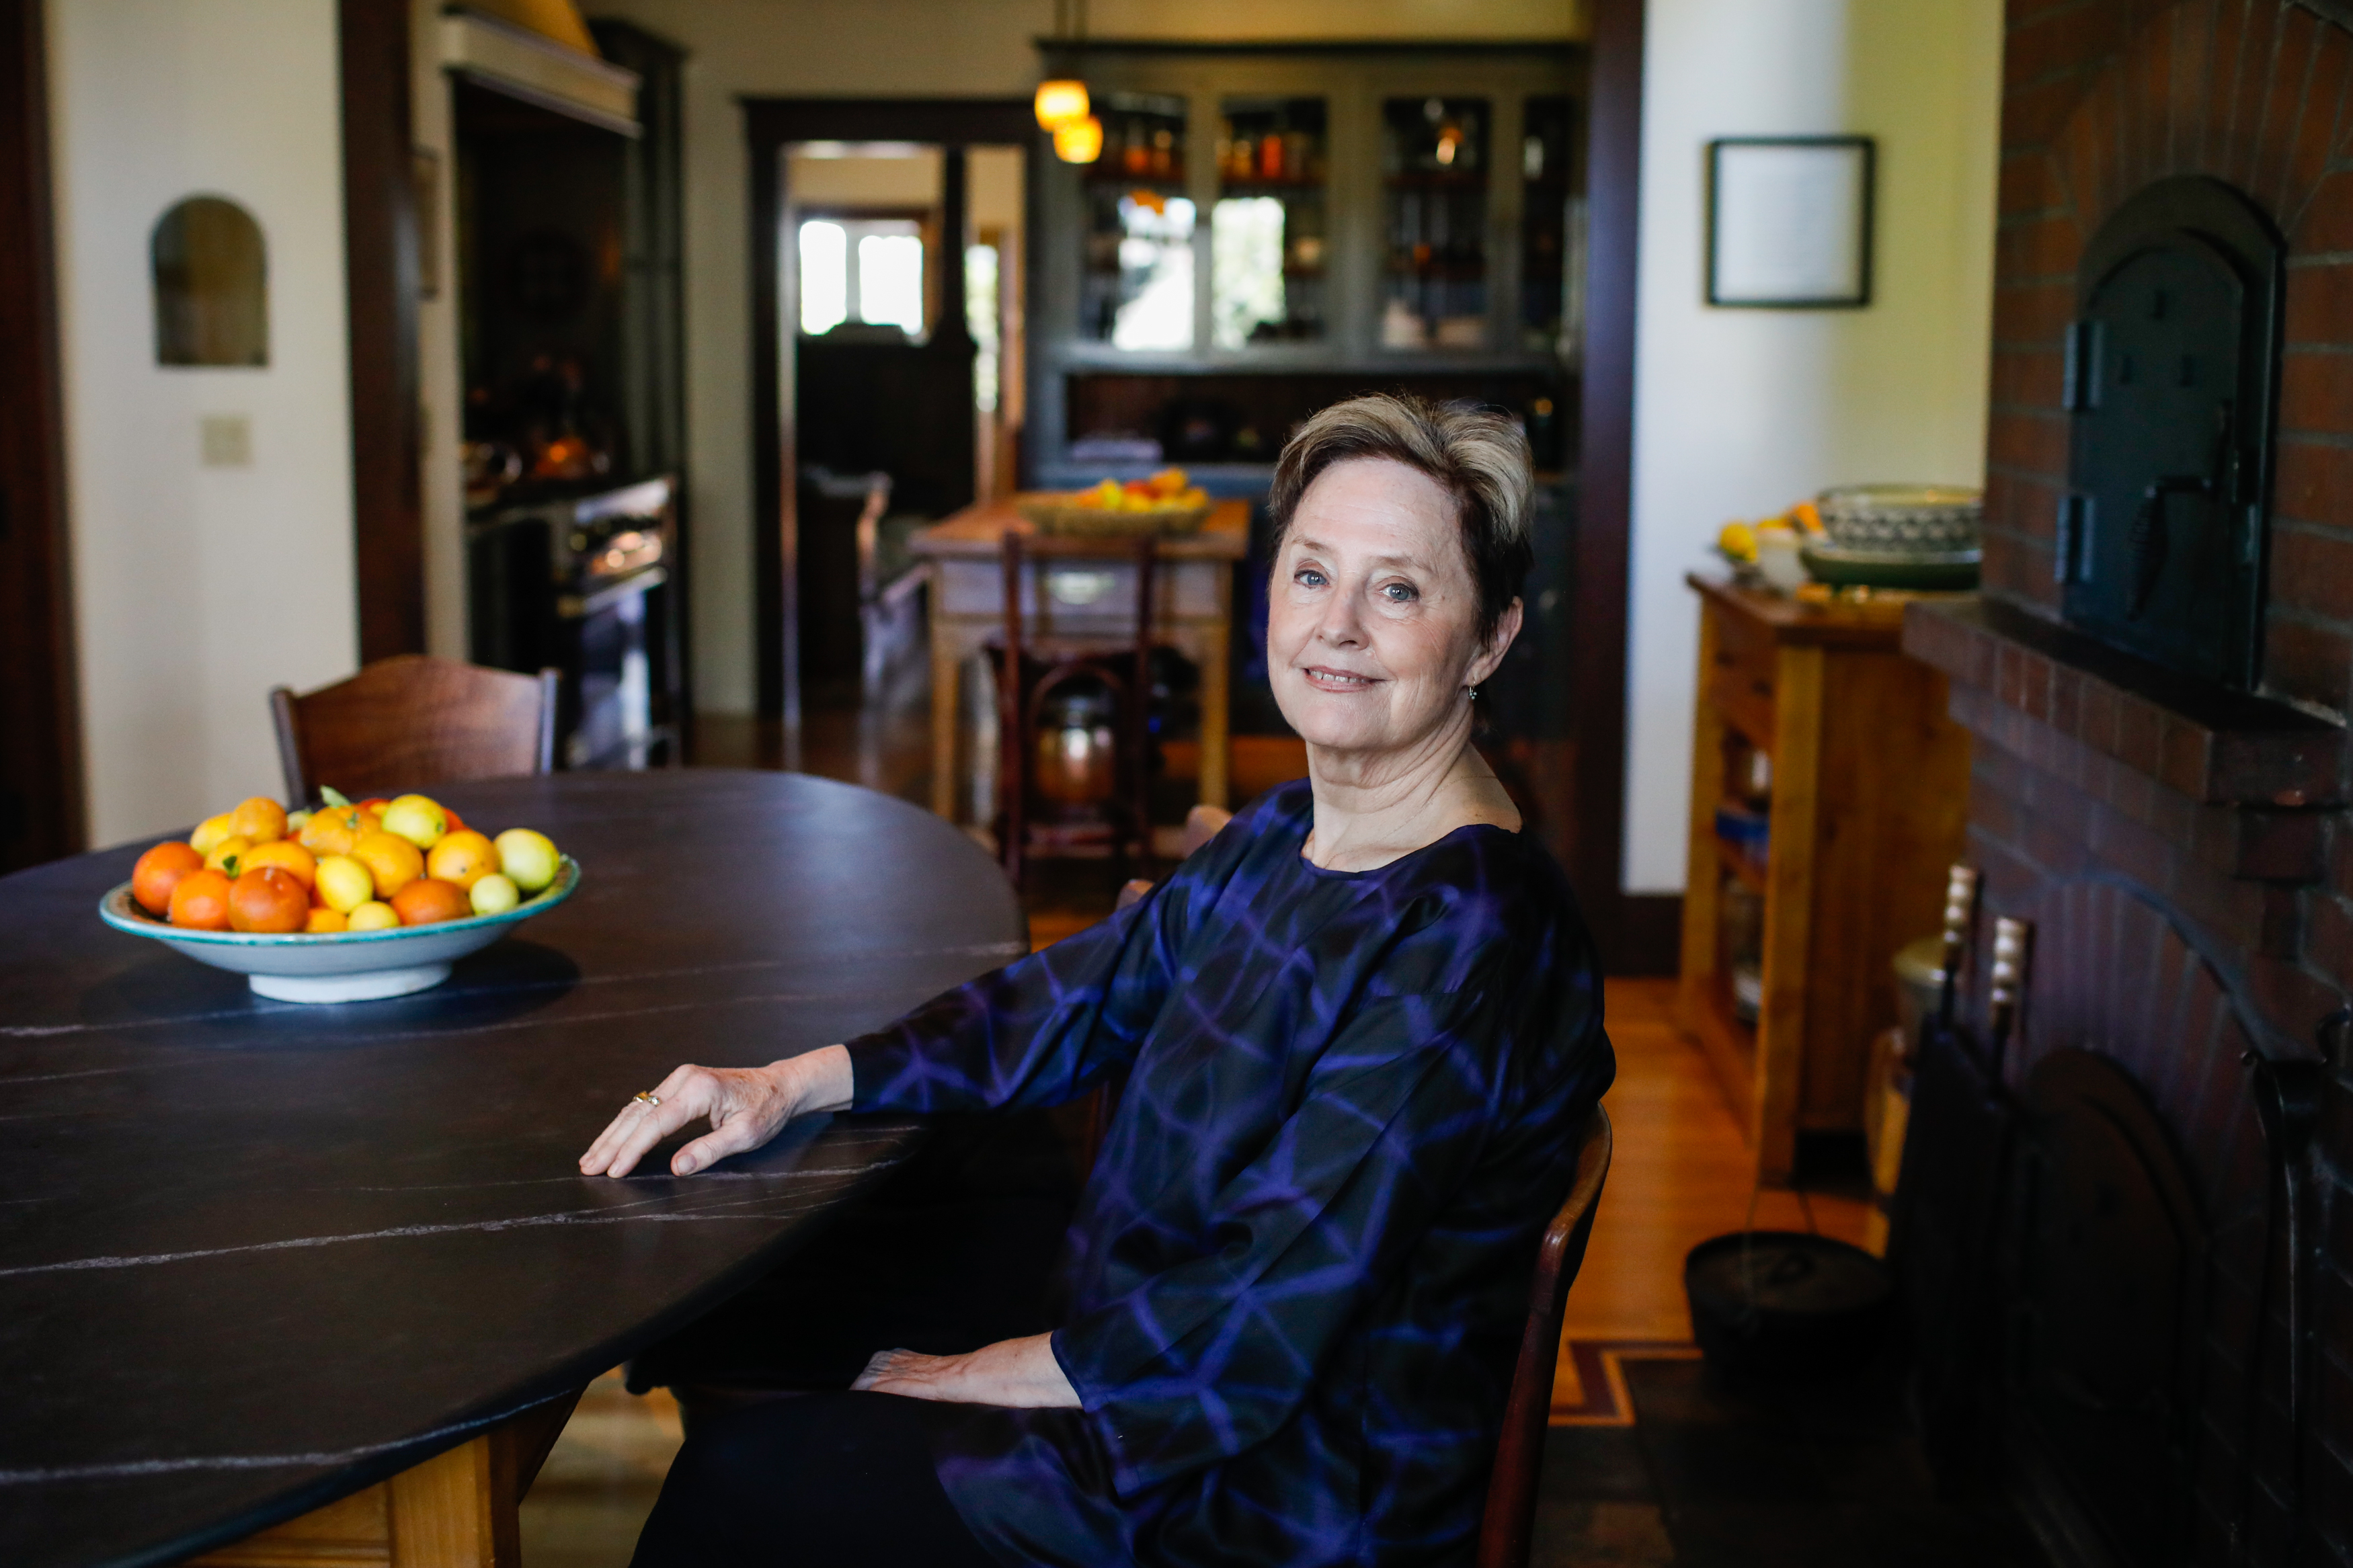 Alice Waters poses for a portrait at her home in Berkeley, California on Monday, March 2, 2020. Her daughter Fanny Singer has written new memoir which features recipes from her childhood titled ?Always Home: A Daughter's Recipes & Stories? will be release